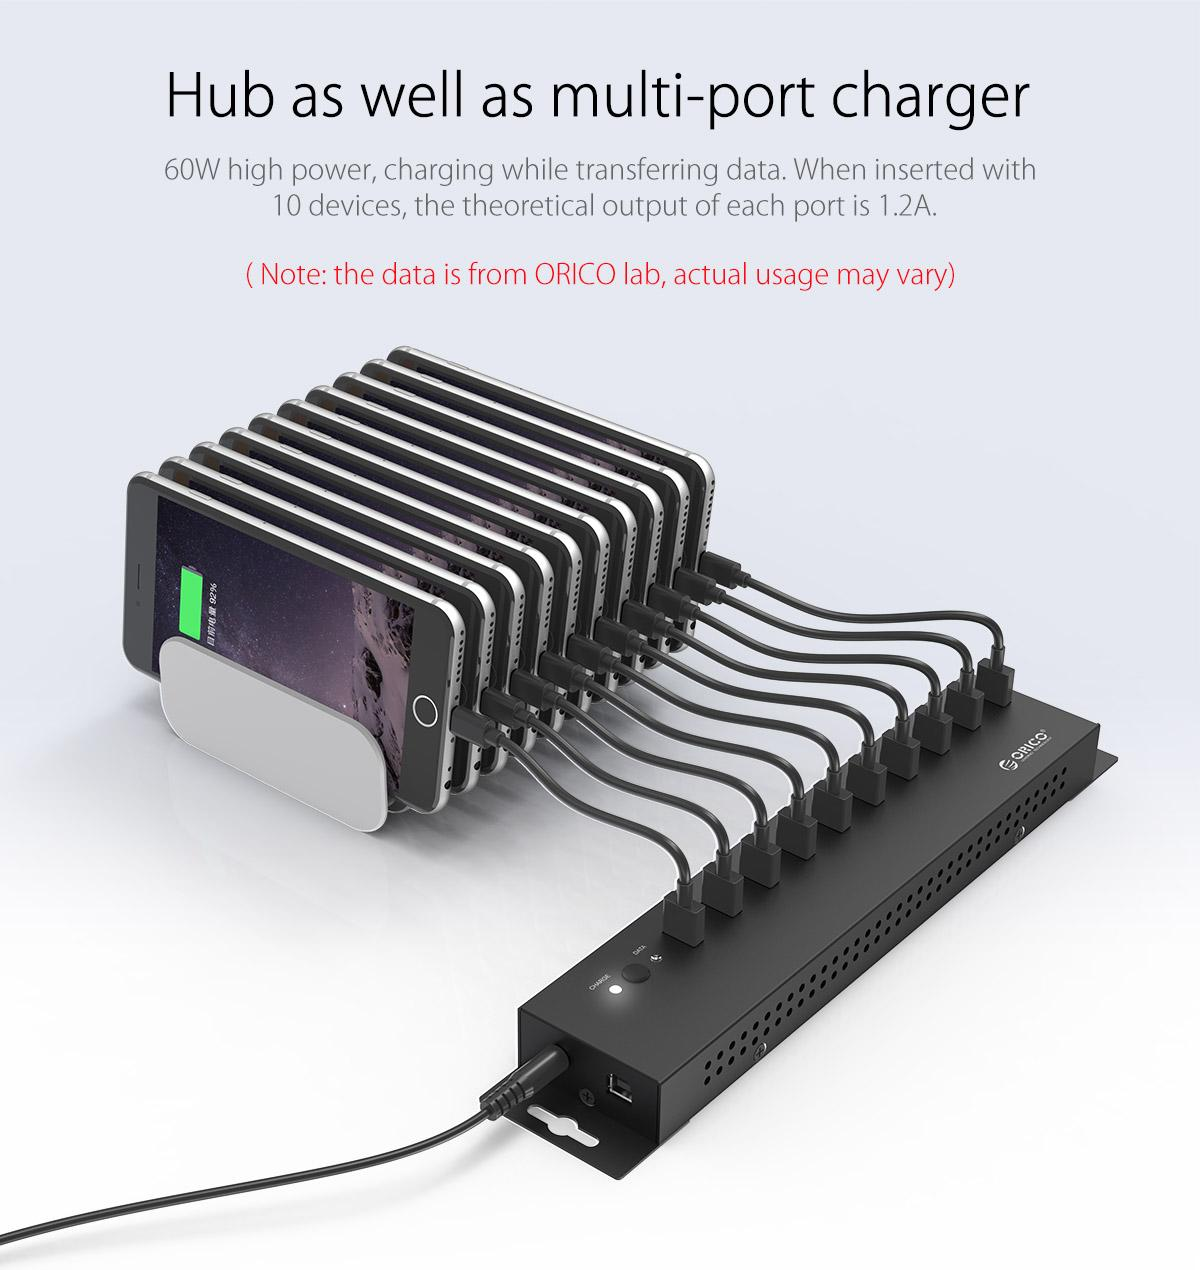 60W high power,1.2A output